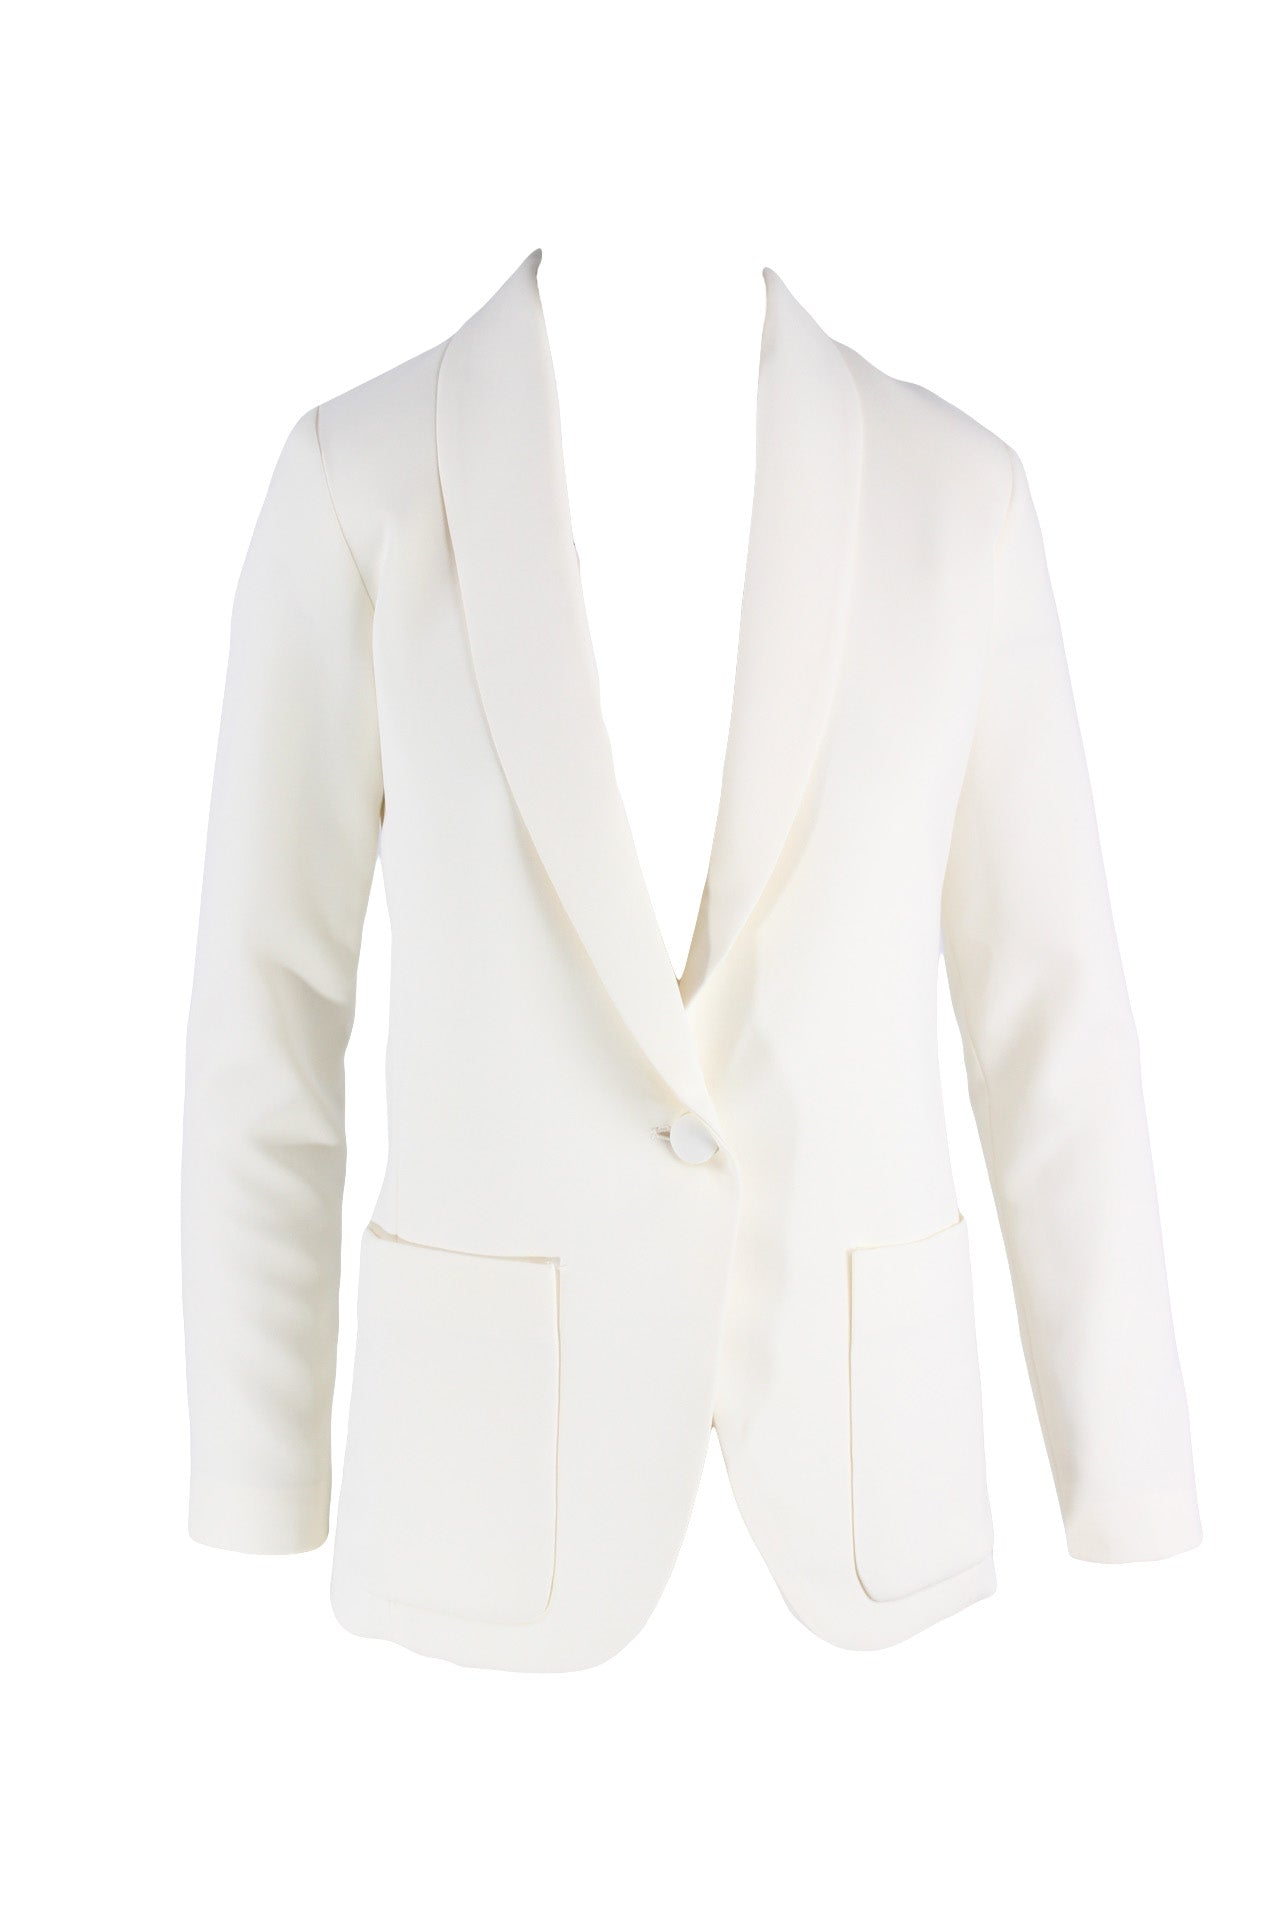 amanda uprichard ivory blazer. features a single button closure, a long decollete line, and two front pockets.